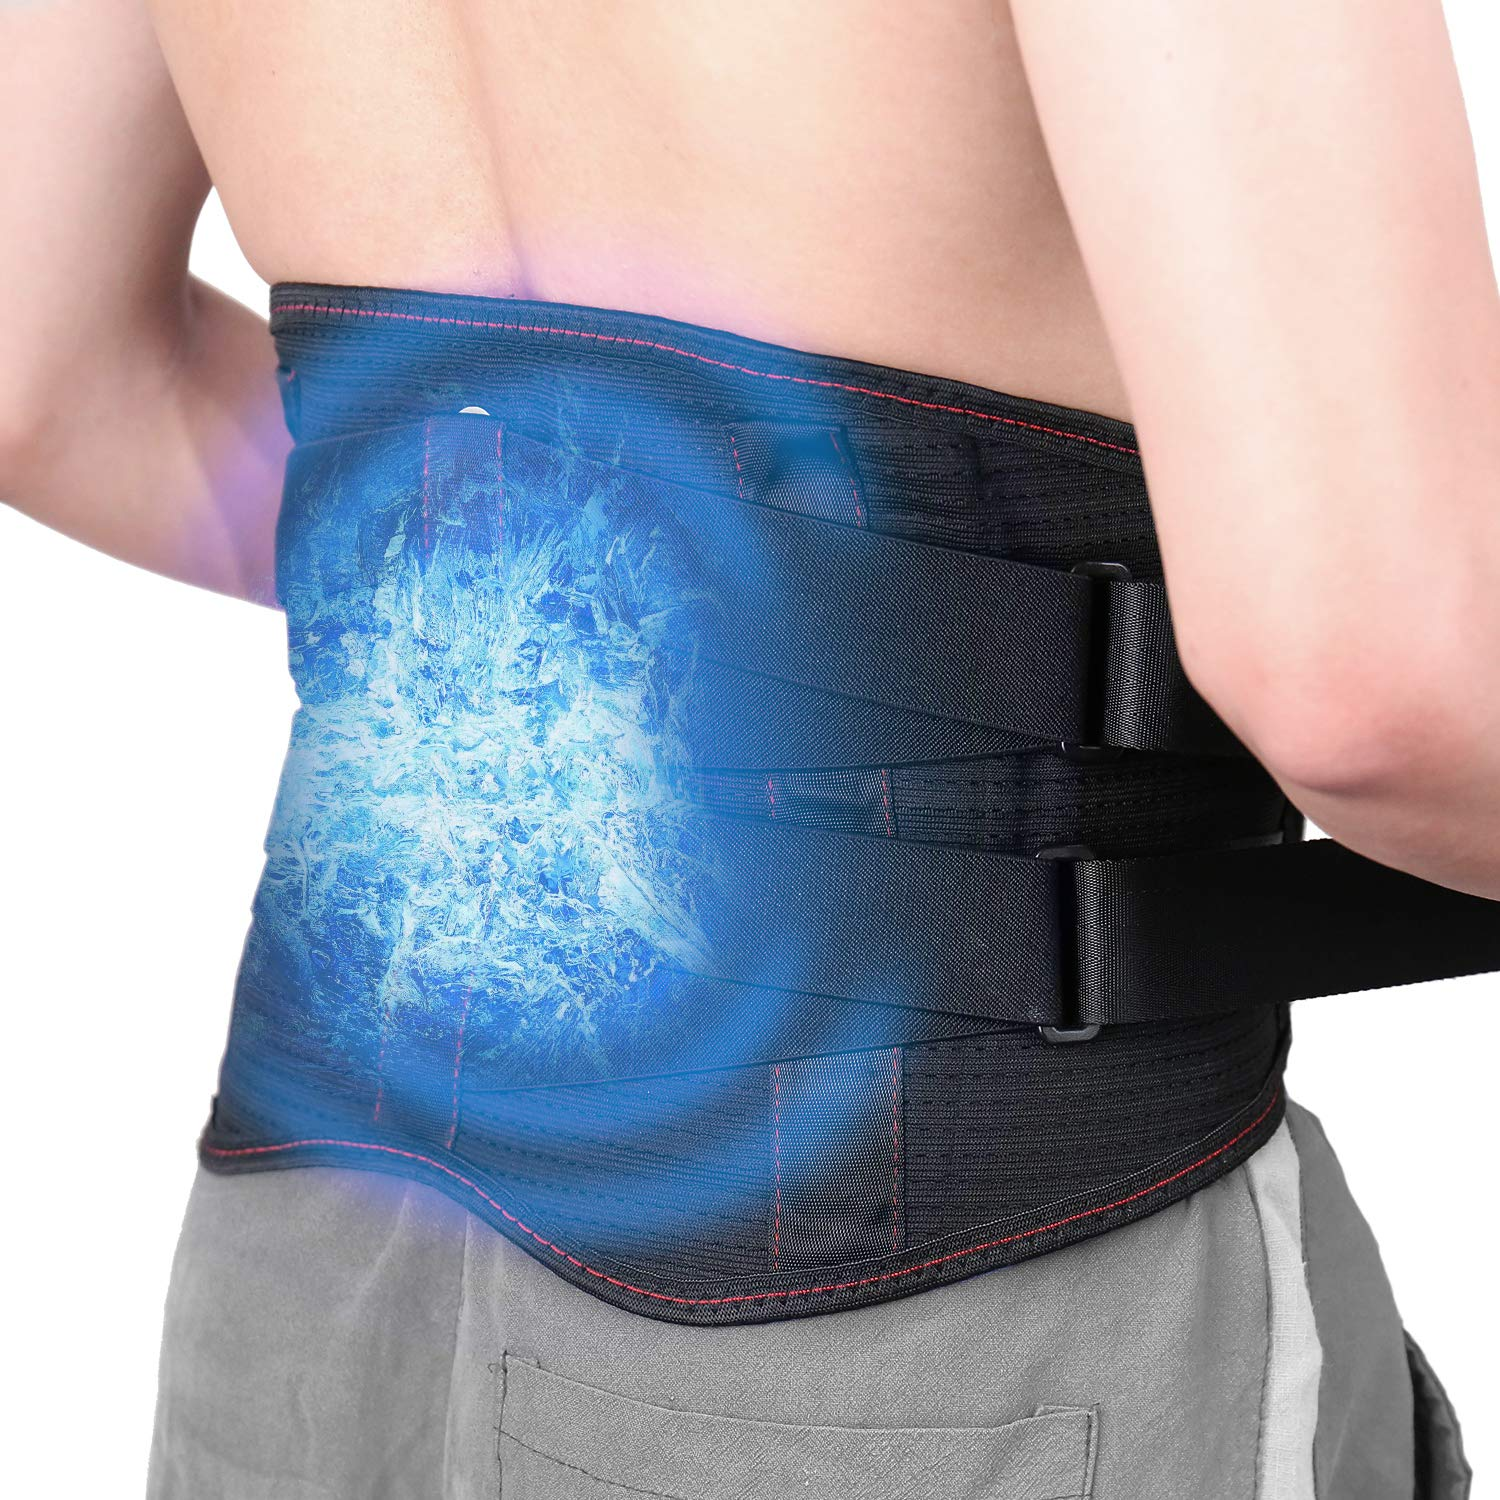 Ice Pack for Lower Back Pain Relief/Back Brace with Ice Packs for Lower Back Injuries, Sciatica, Coccyx, Scoliosis Herniated Disc - Adjustable Back Support Belt w/Hot Cold Therapy Wrap for Men Women